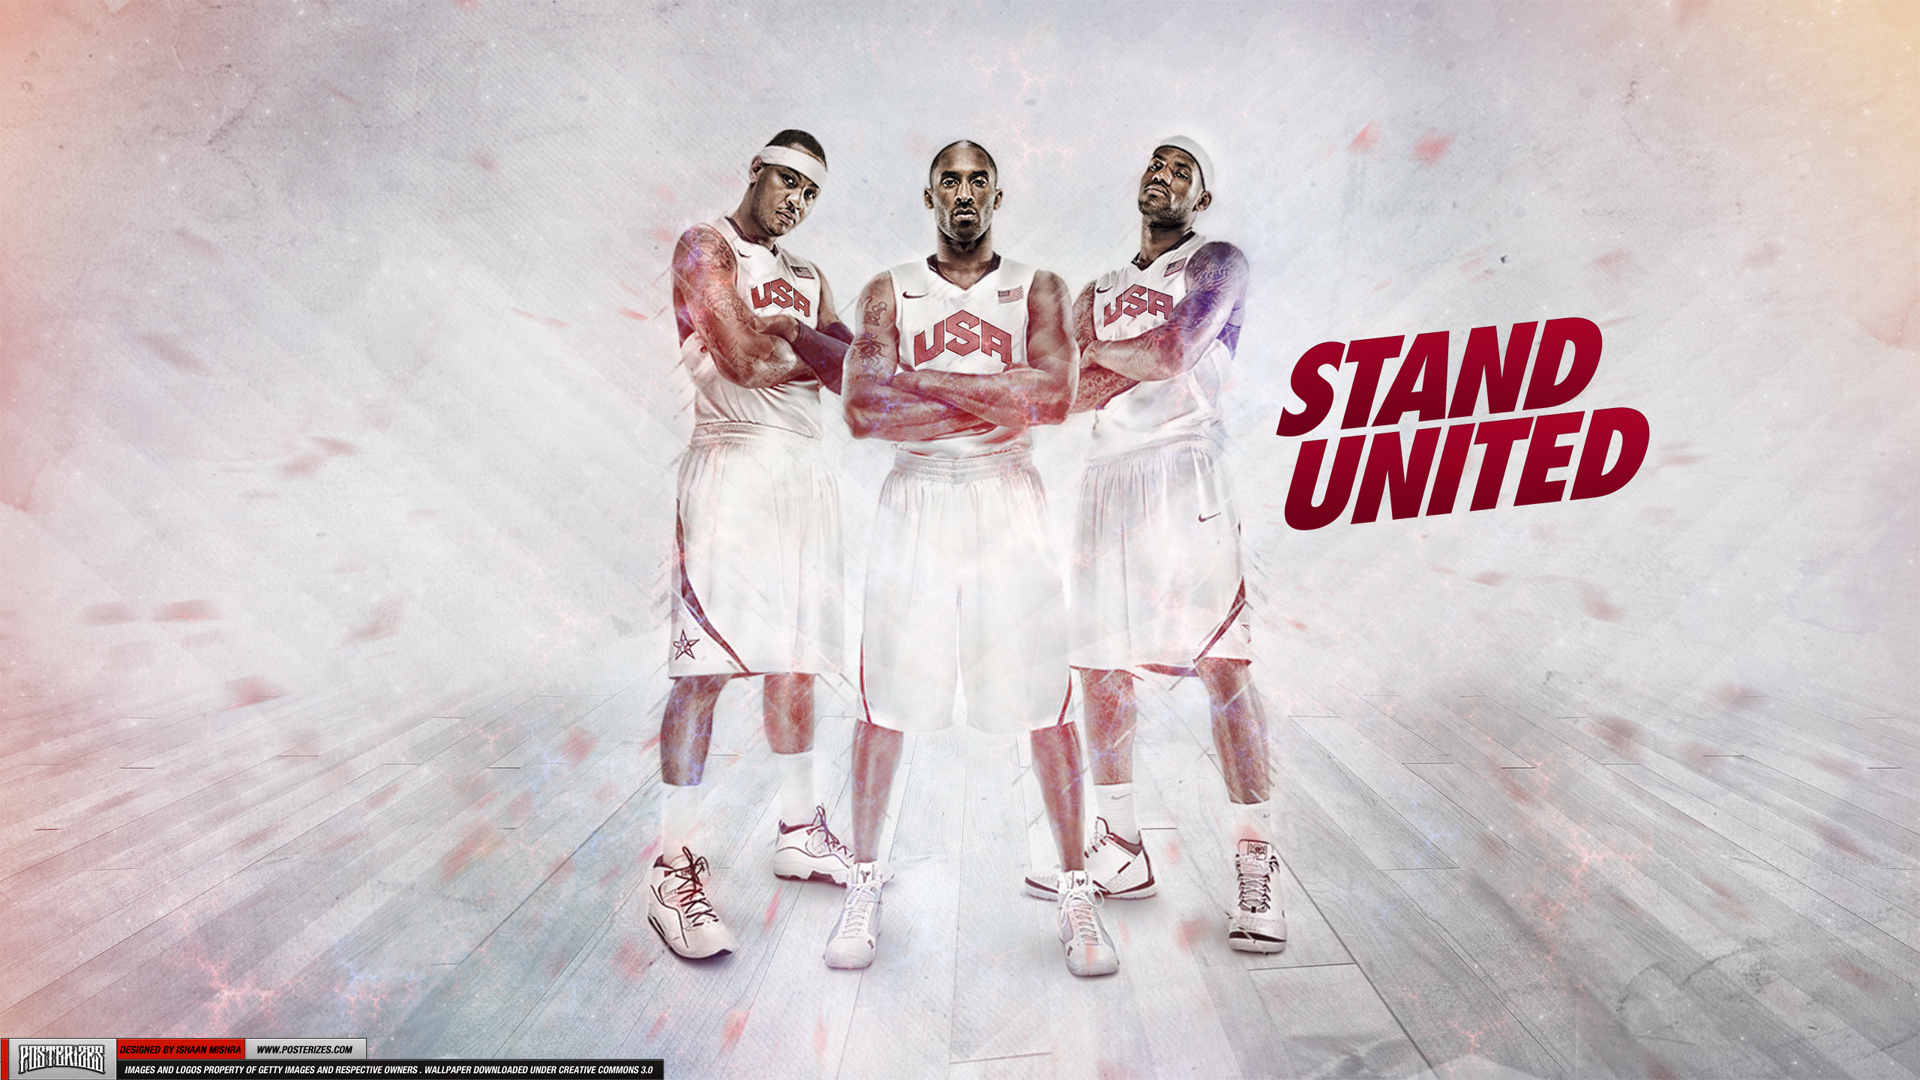 Team USA Stand United Wallpaper By IshaanMishra